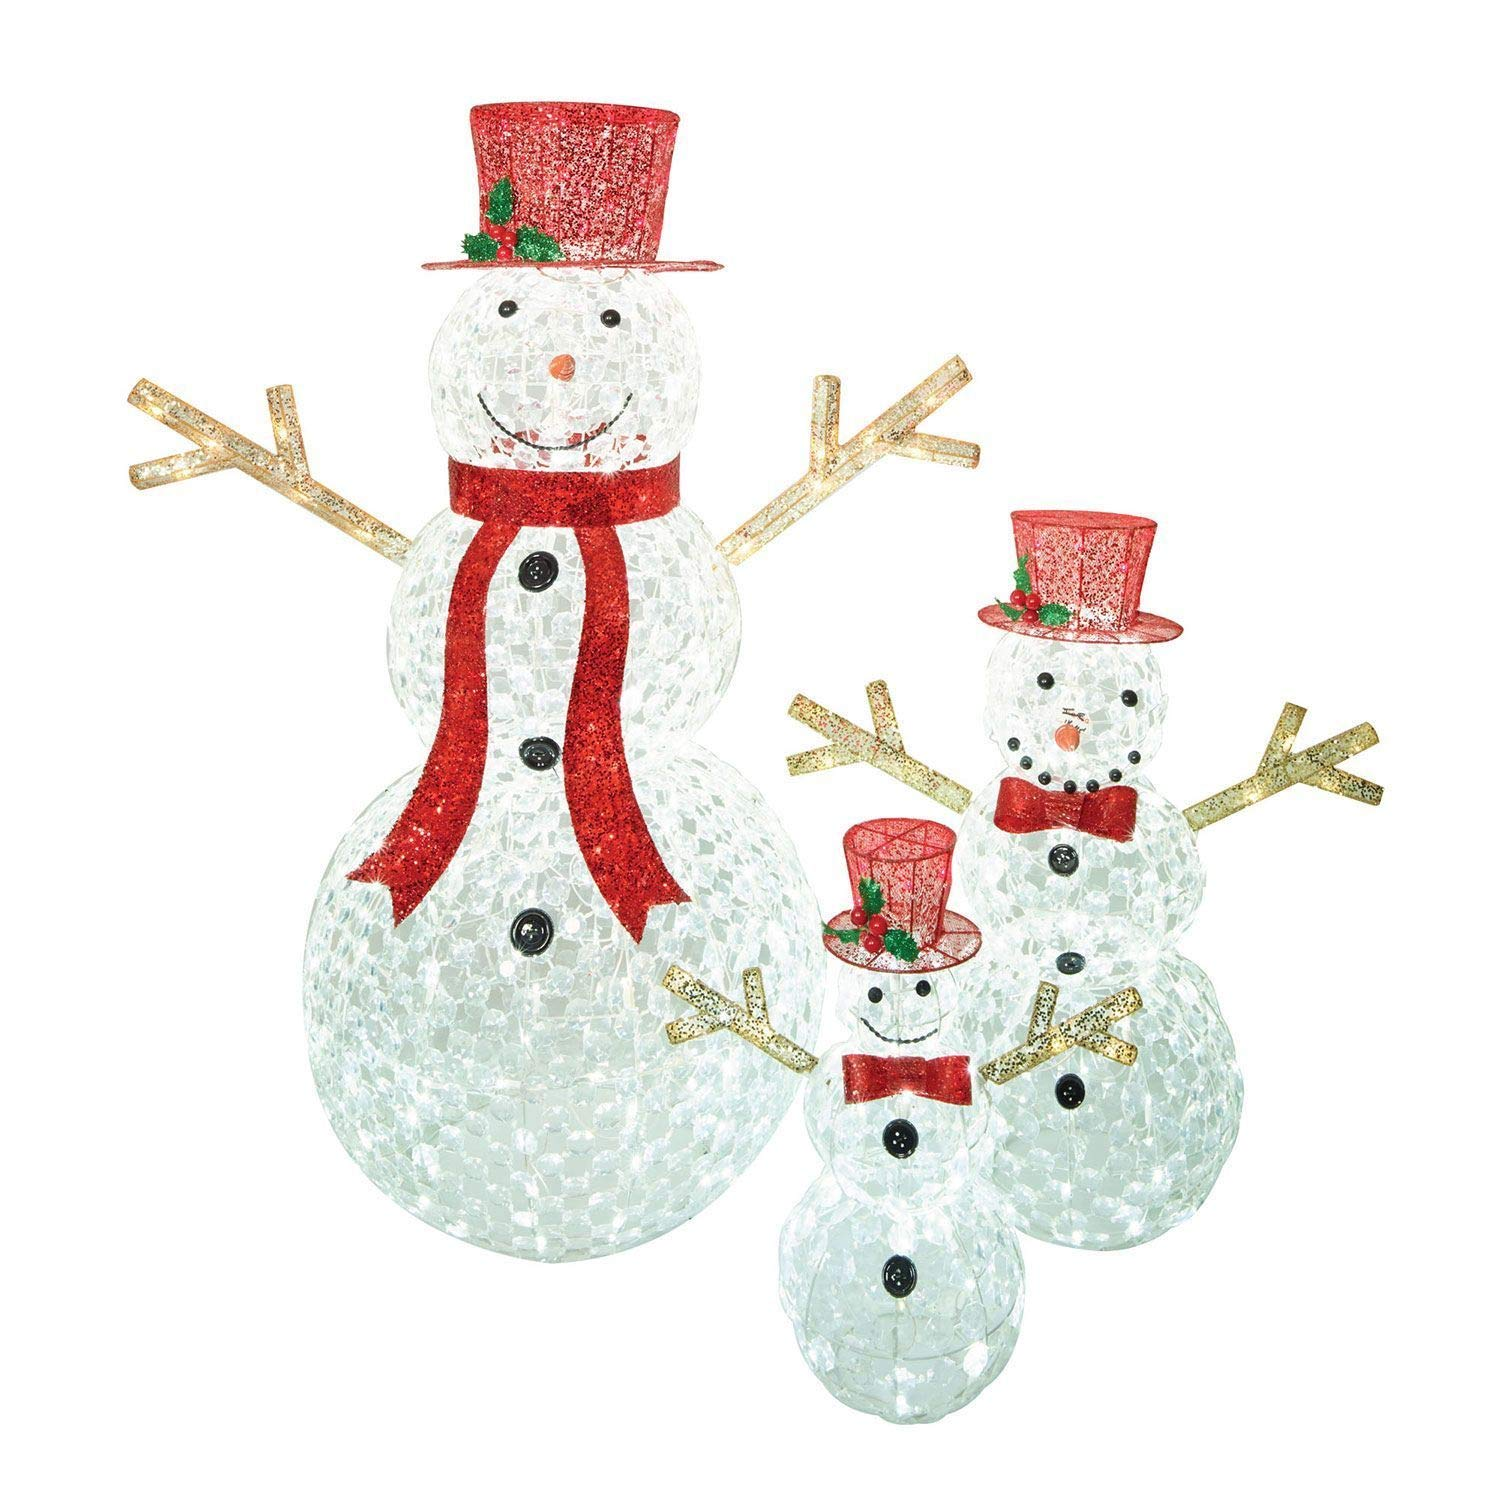 Amazon.com : Holiday Home Set of 3 Crystal Ice LED Lighted Snowman ...